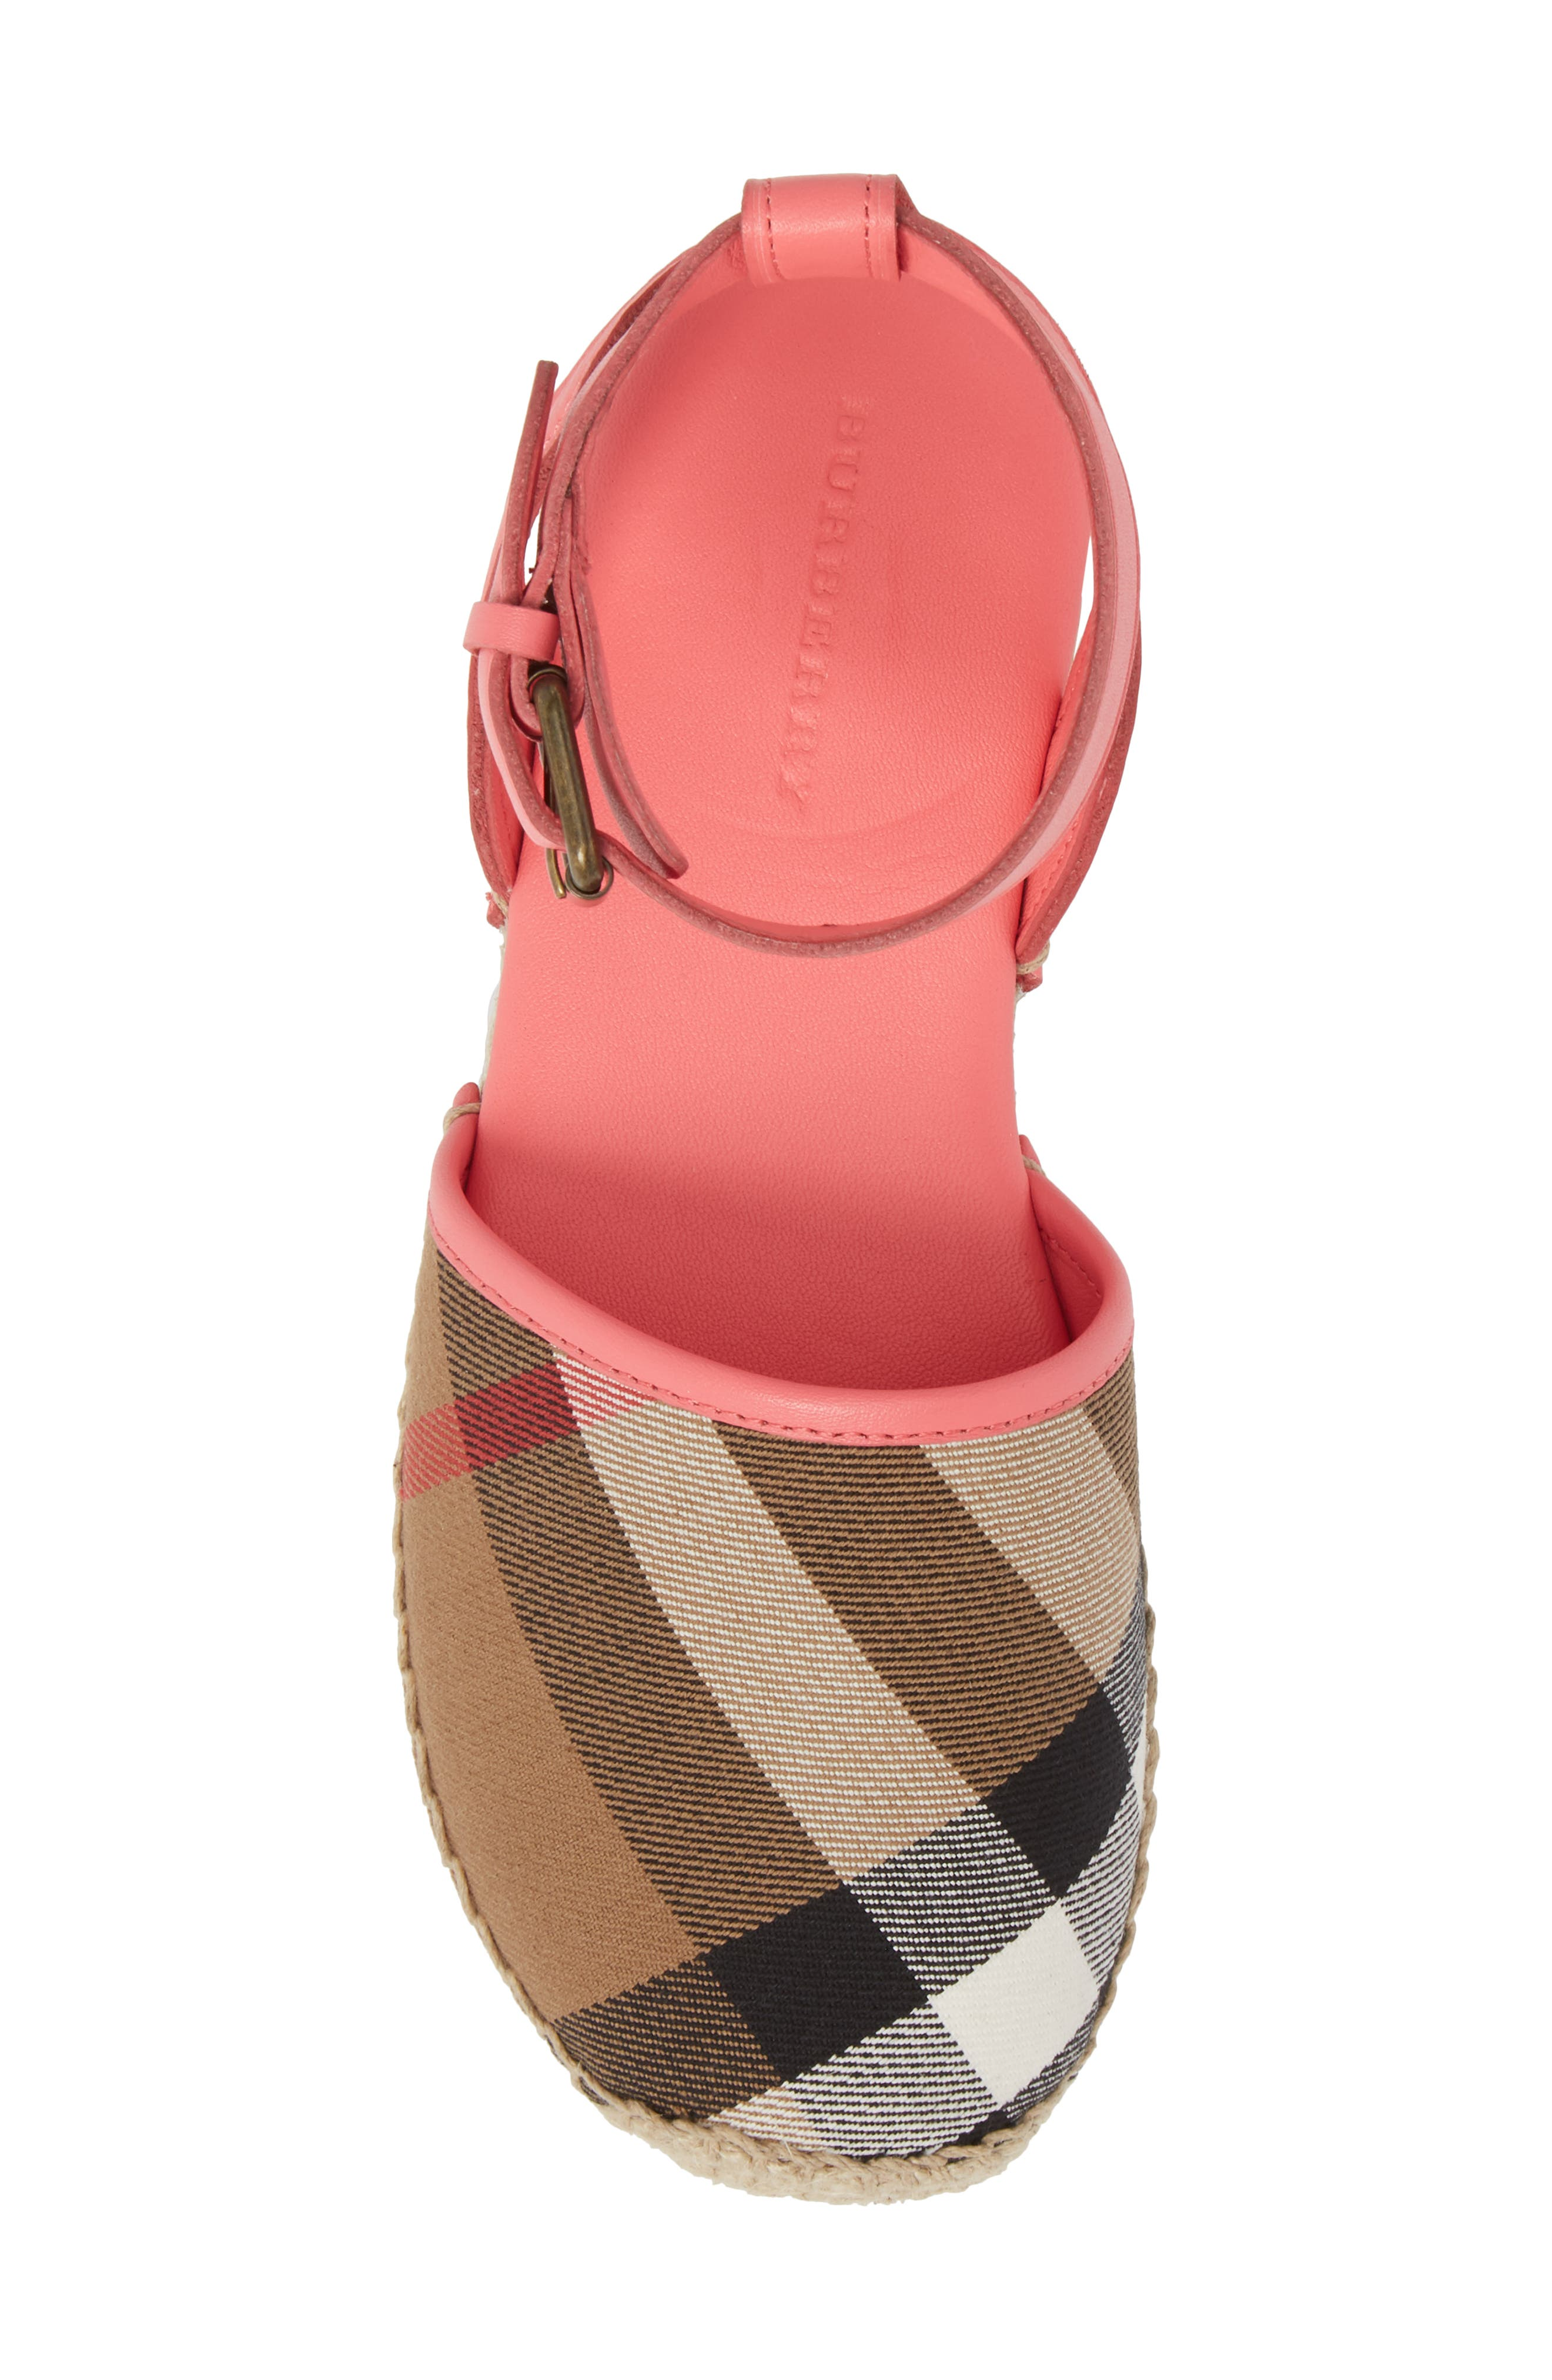 New Perth Espadrille Sandal,                             Alternate thumbnail 5, color,                             676